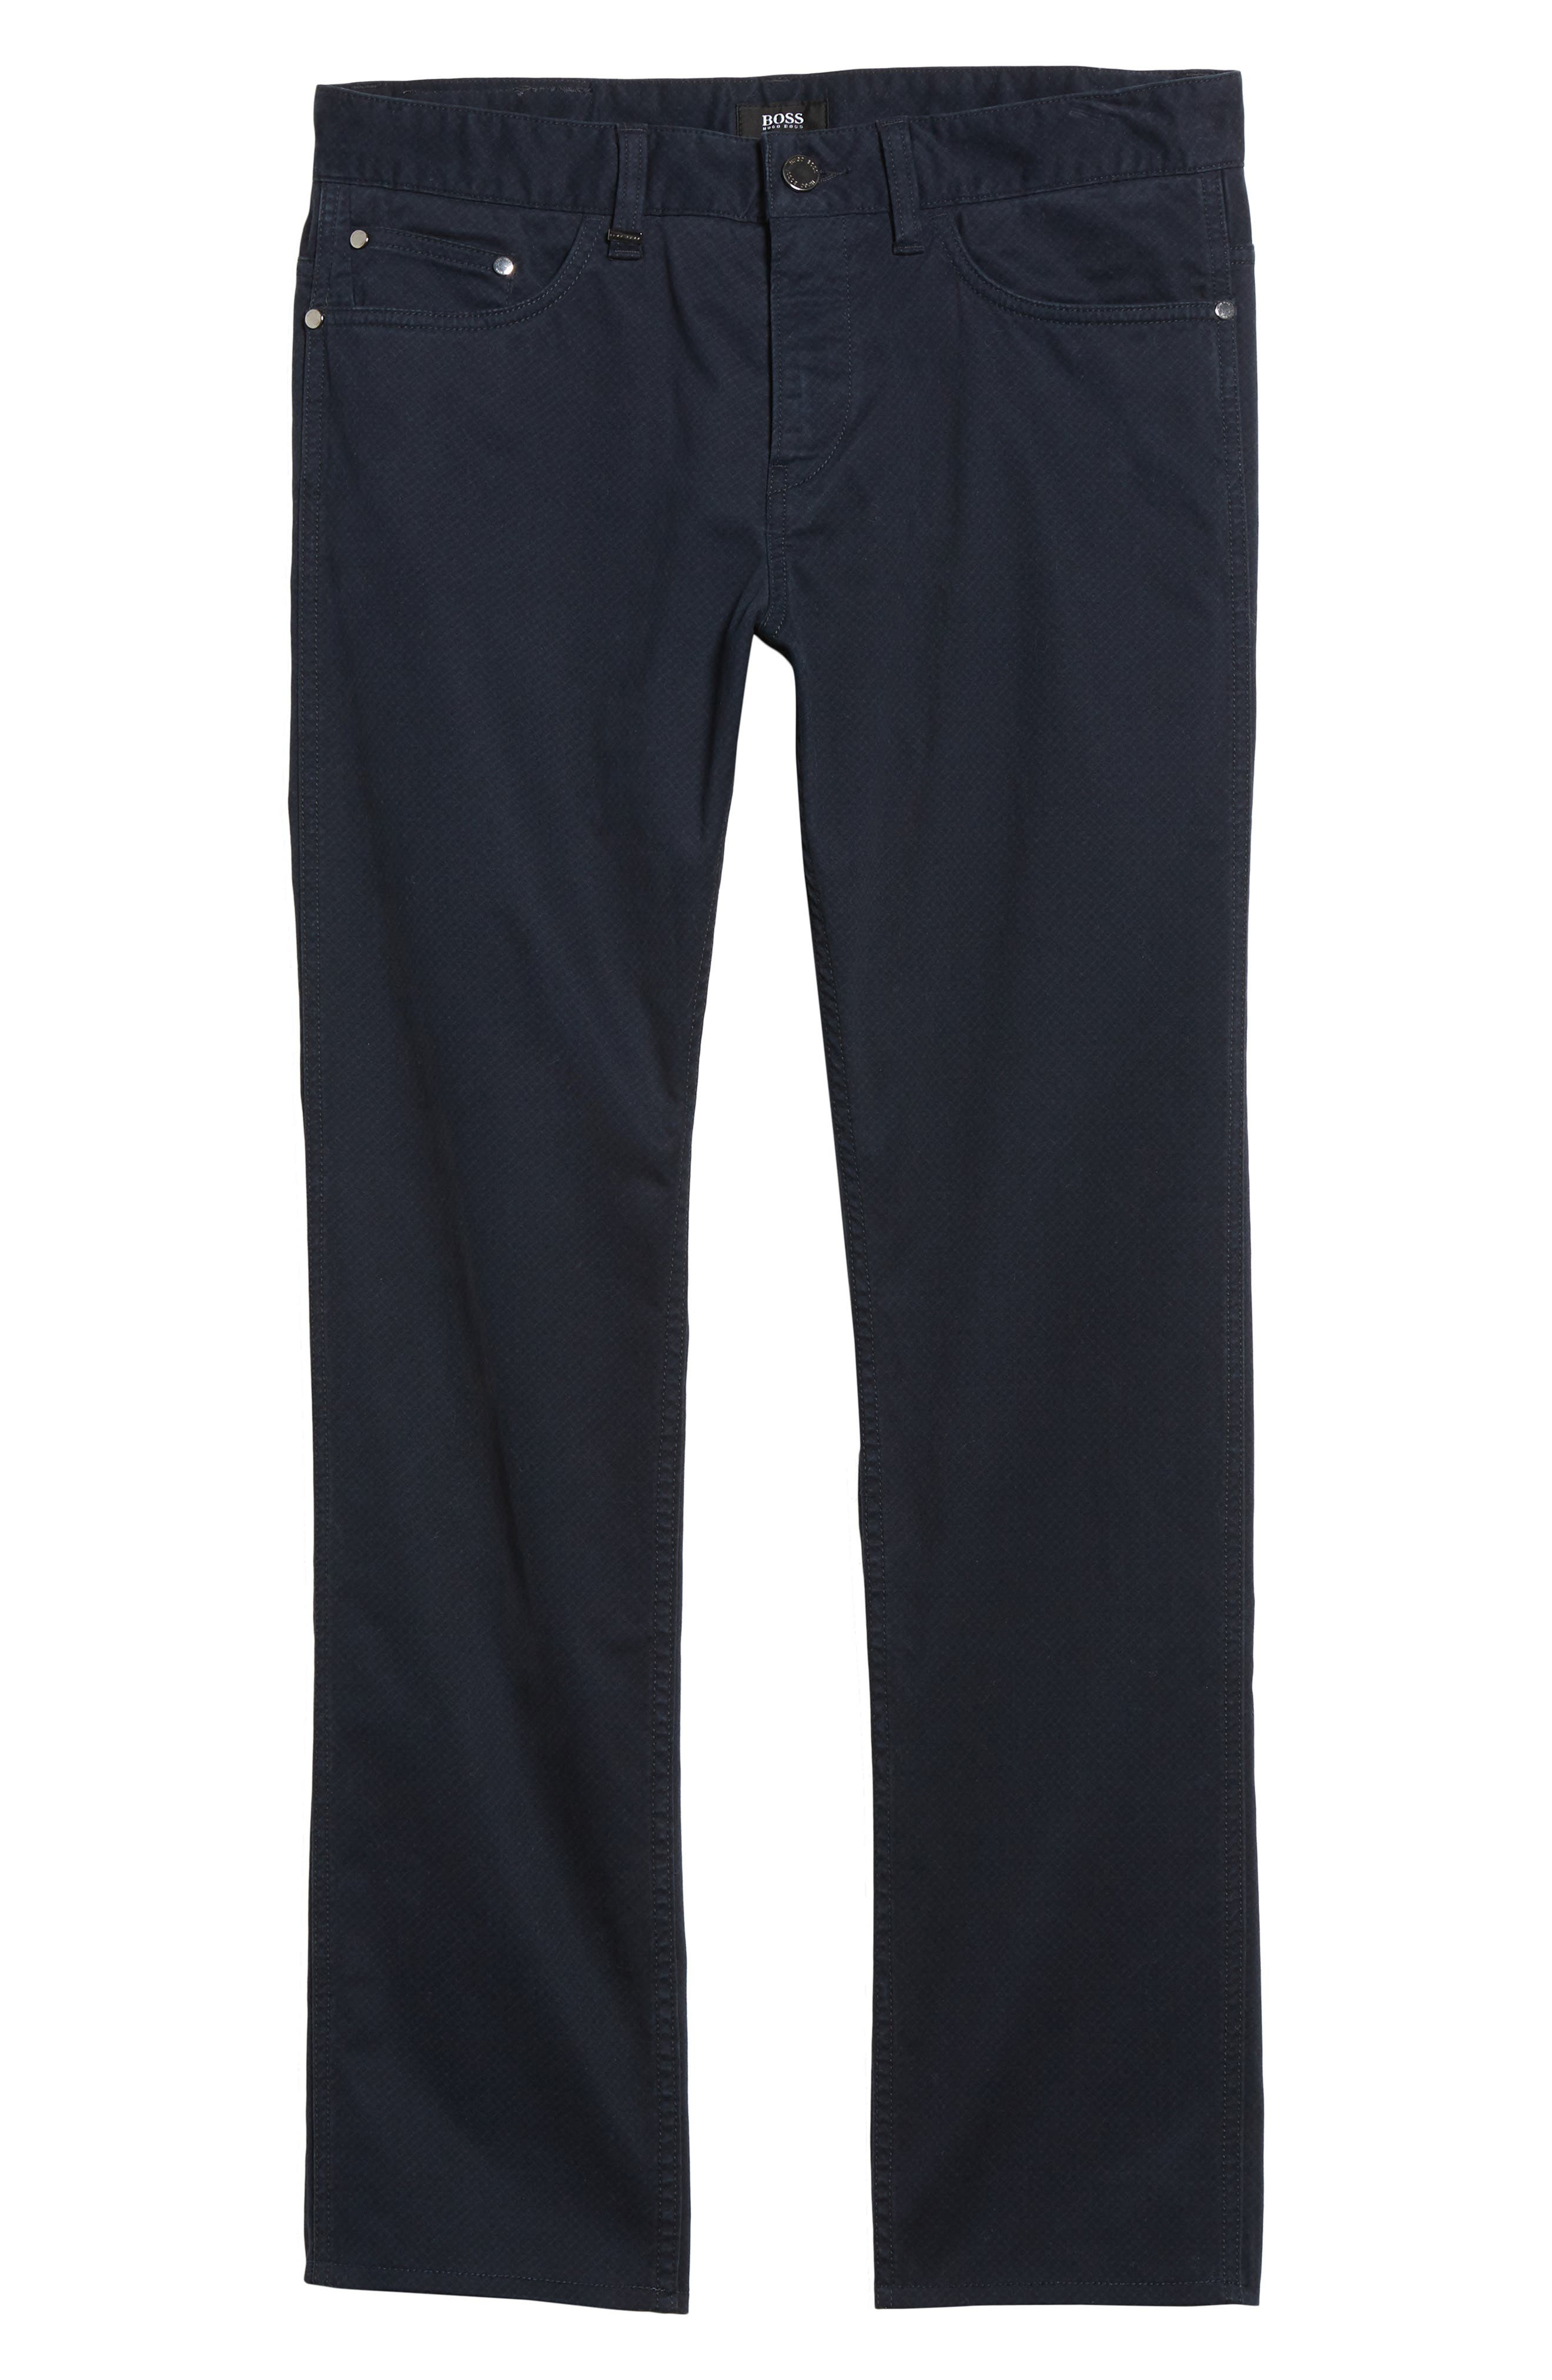 Delaware Slim Fit Pants,                             Alternate thumbnail 6, color,                             410